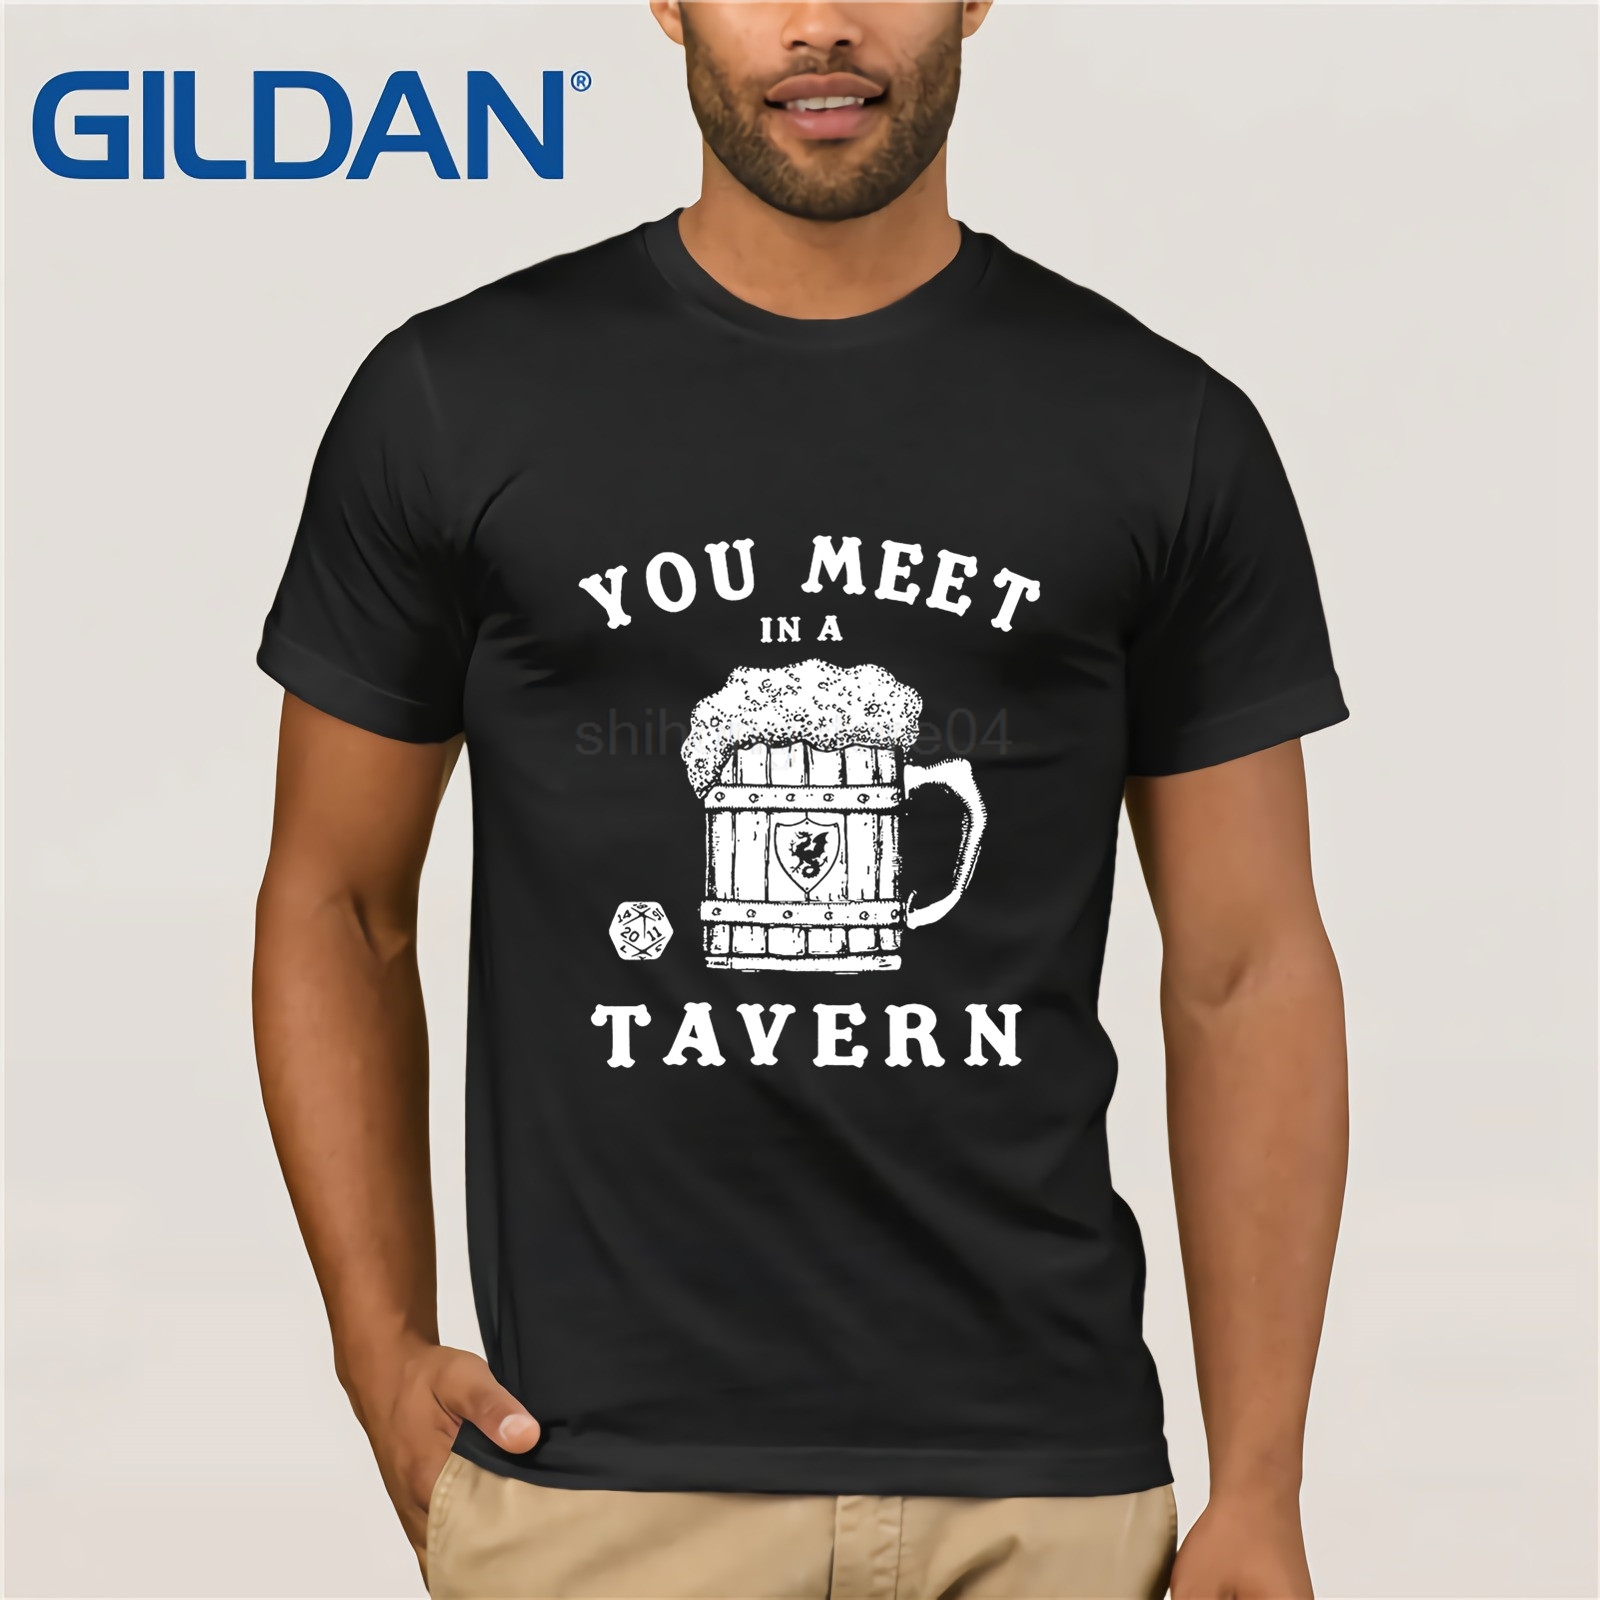 T Shirt Short Sleeve Dungeons Tavern Shirt 20 Sided Dice Shirts and Magic Dragons Beer Mug The Dungeon Master Fantasy RPG image